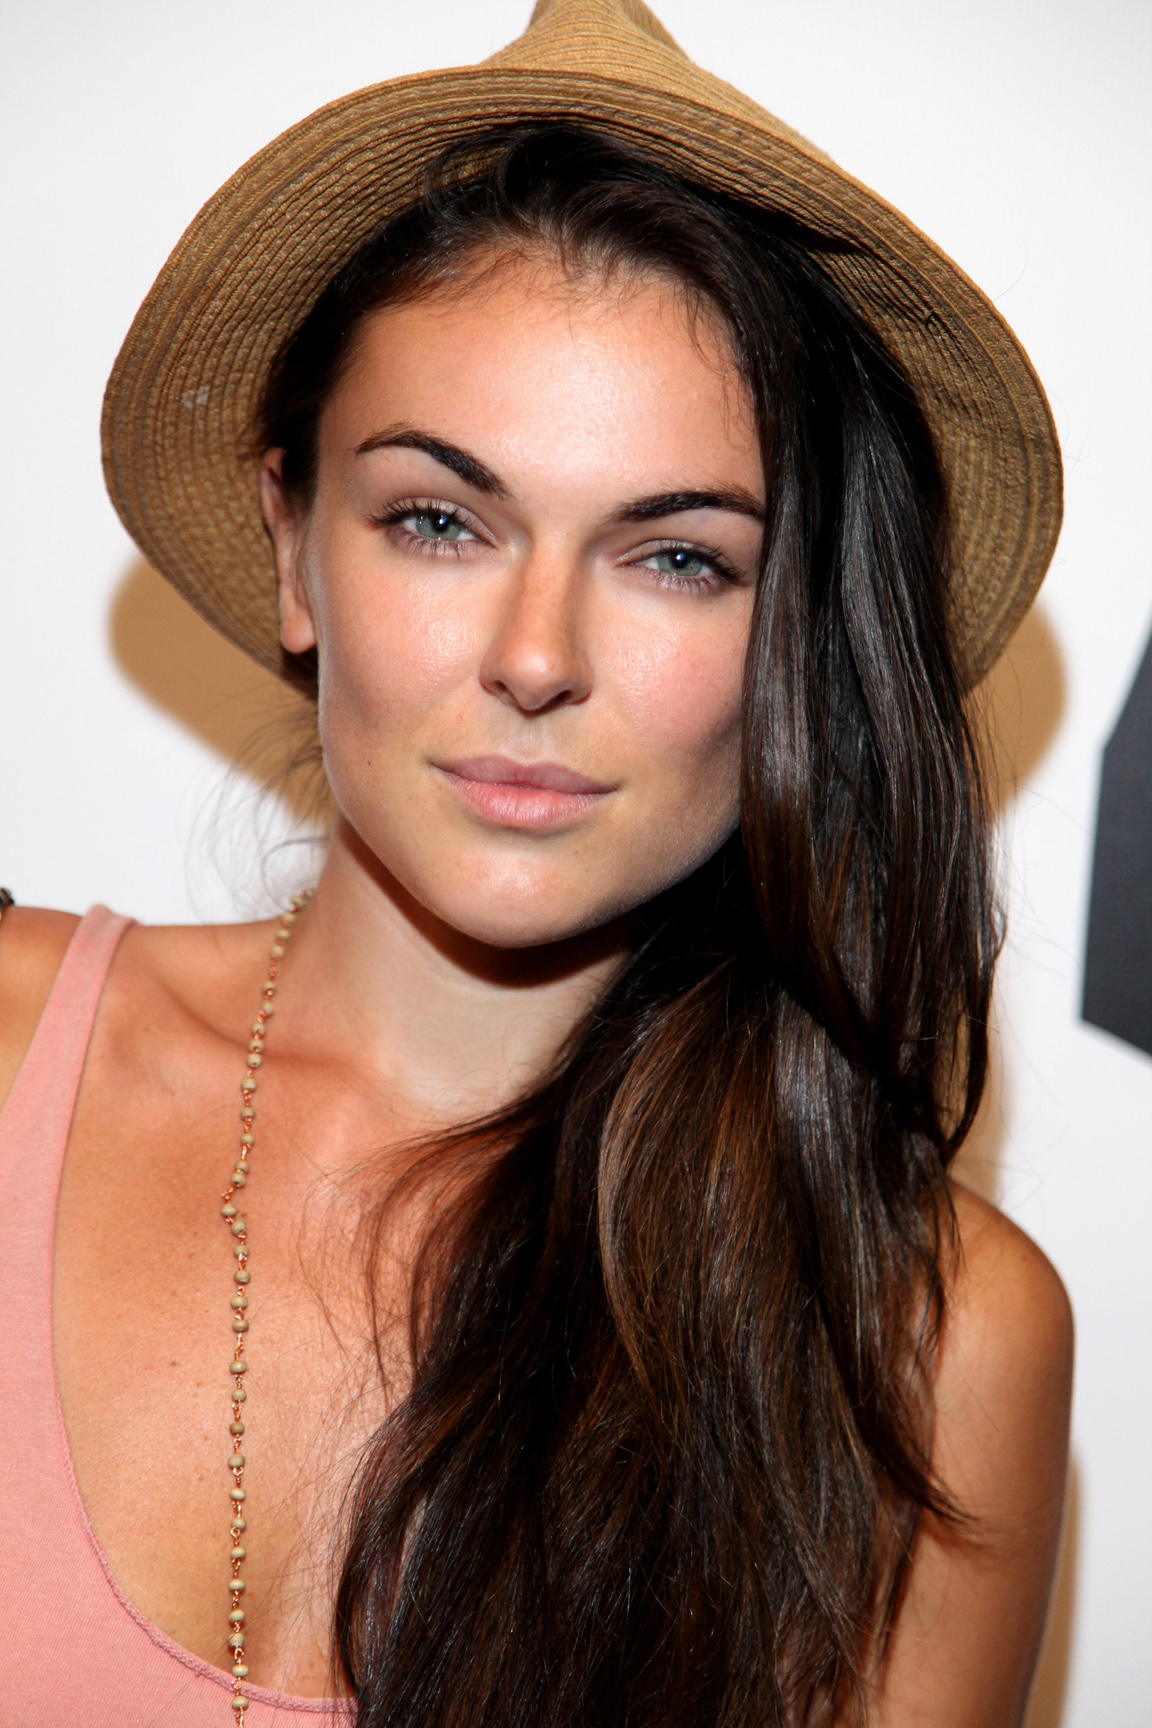 Leaked Serinda Swan naked photo 2017